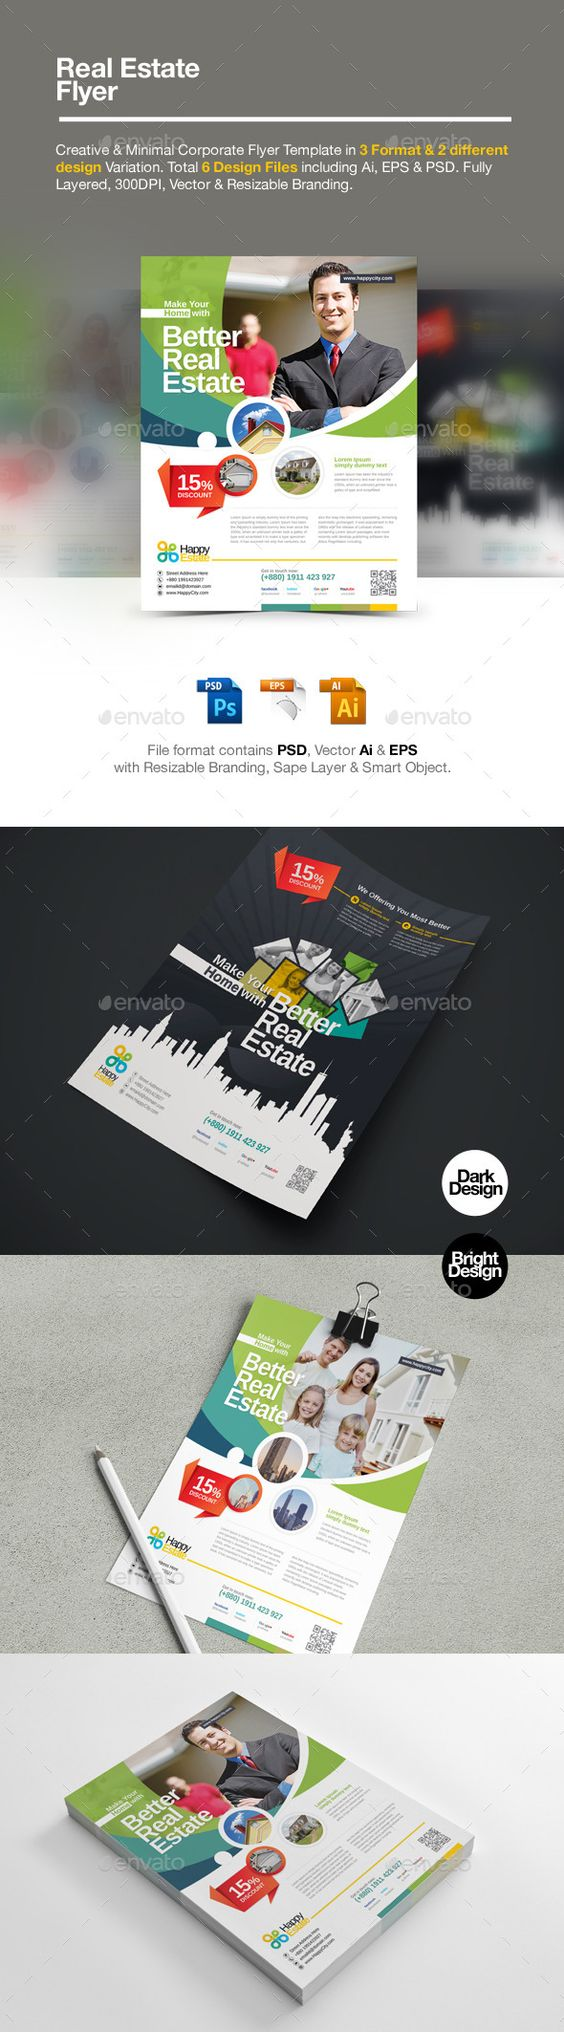 real estate flyer flyer template real estate flyers and flyers real estate flyer corporate flyers here graphicriver